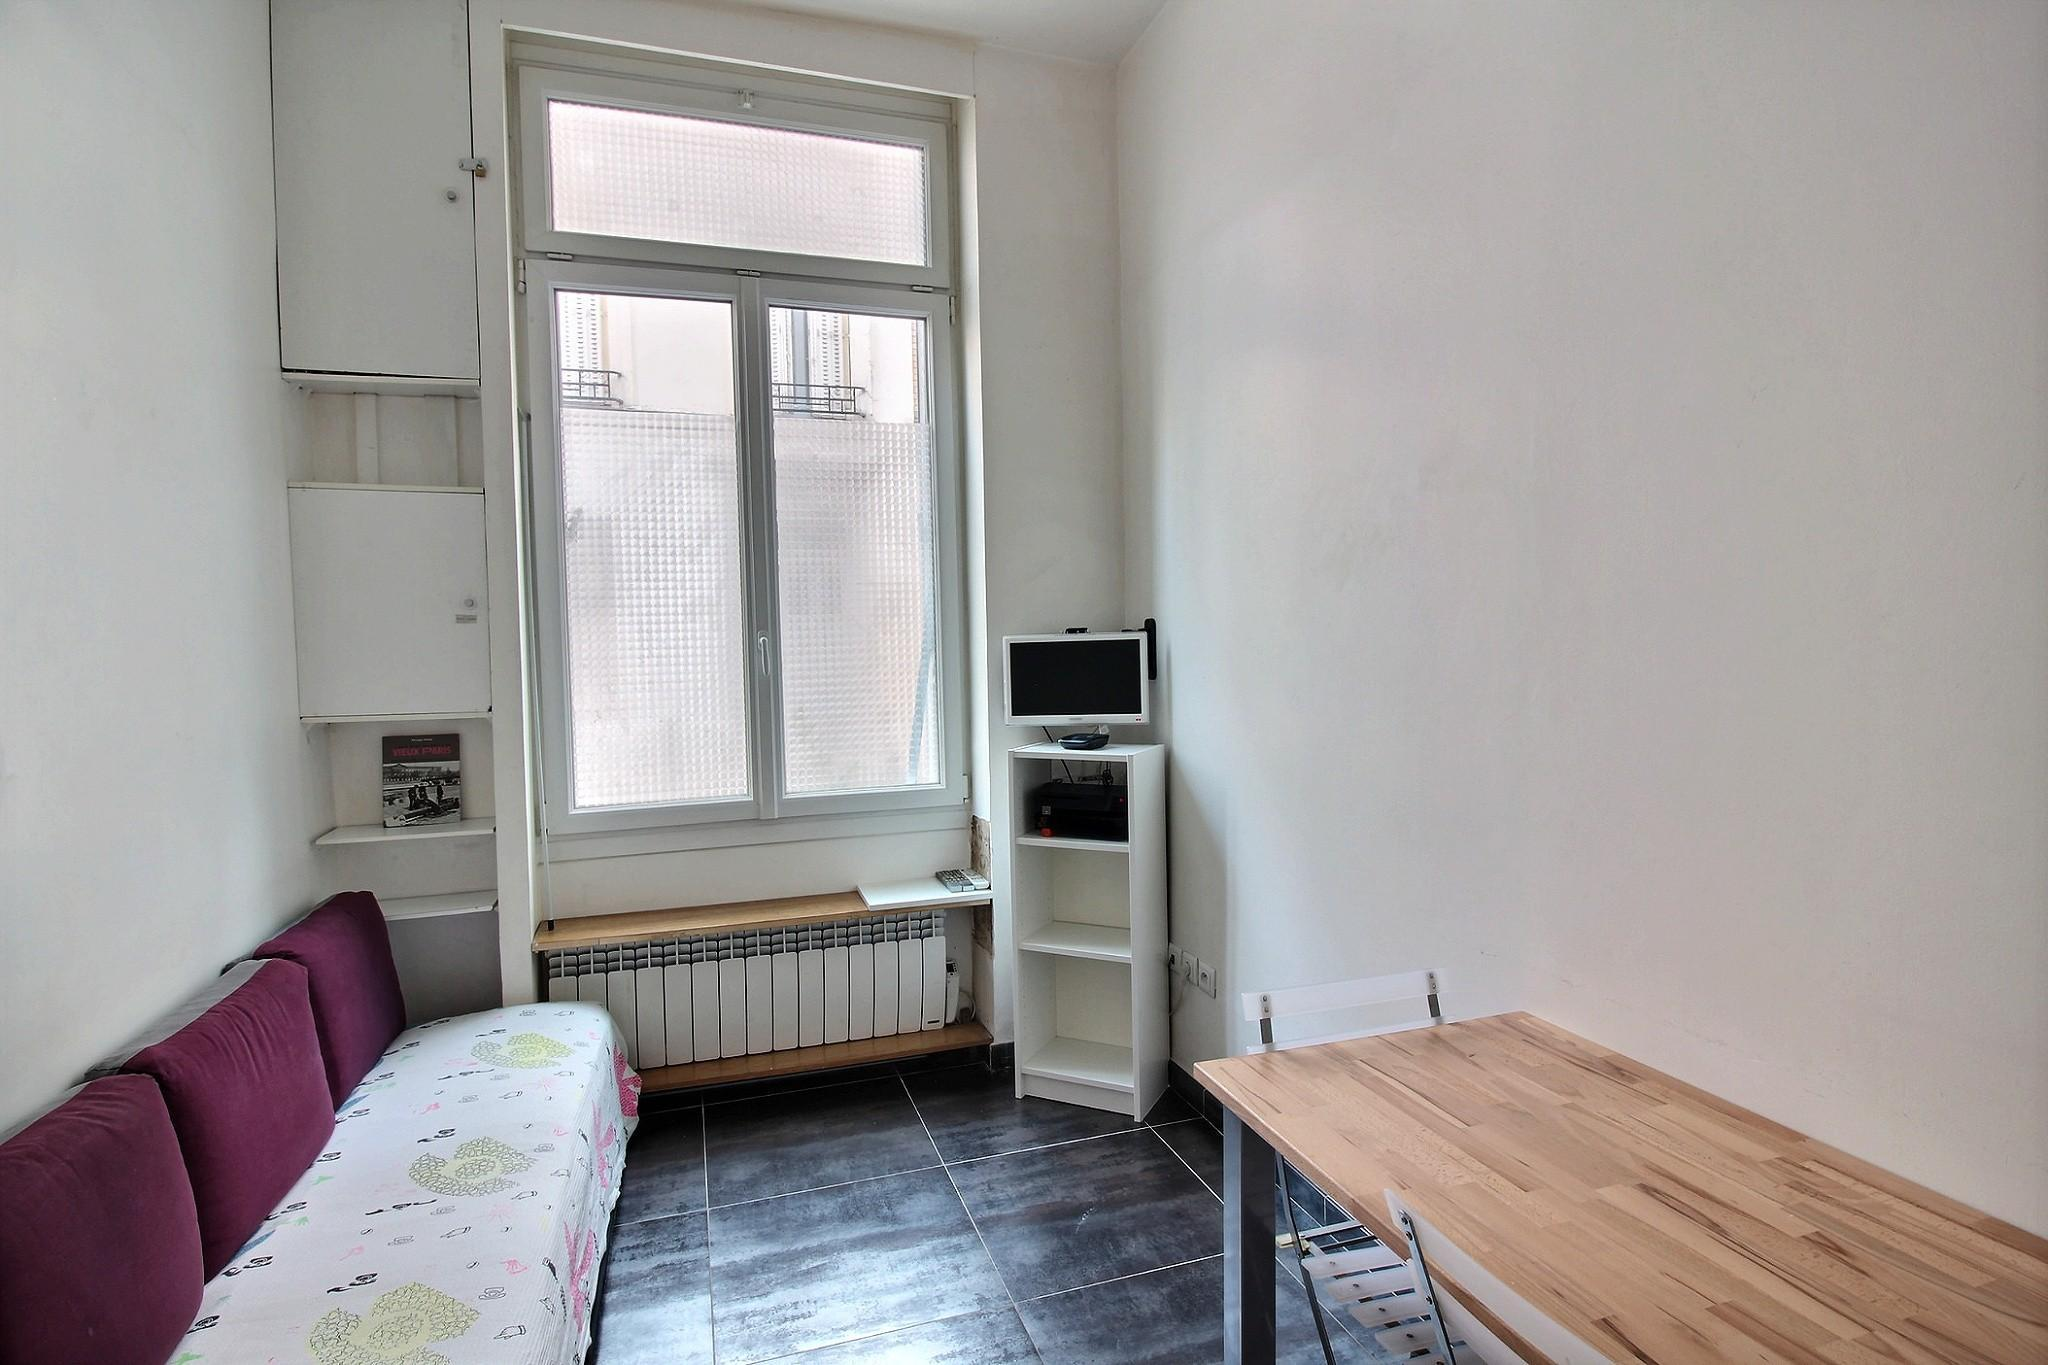 S11145 - Elegant studio for 2 people in the Bastille neighborhood